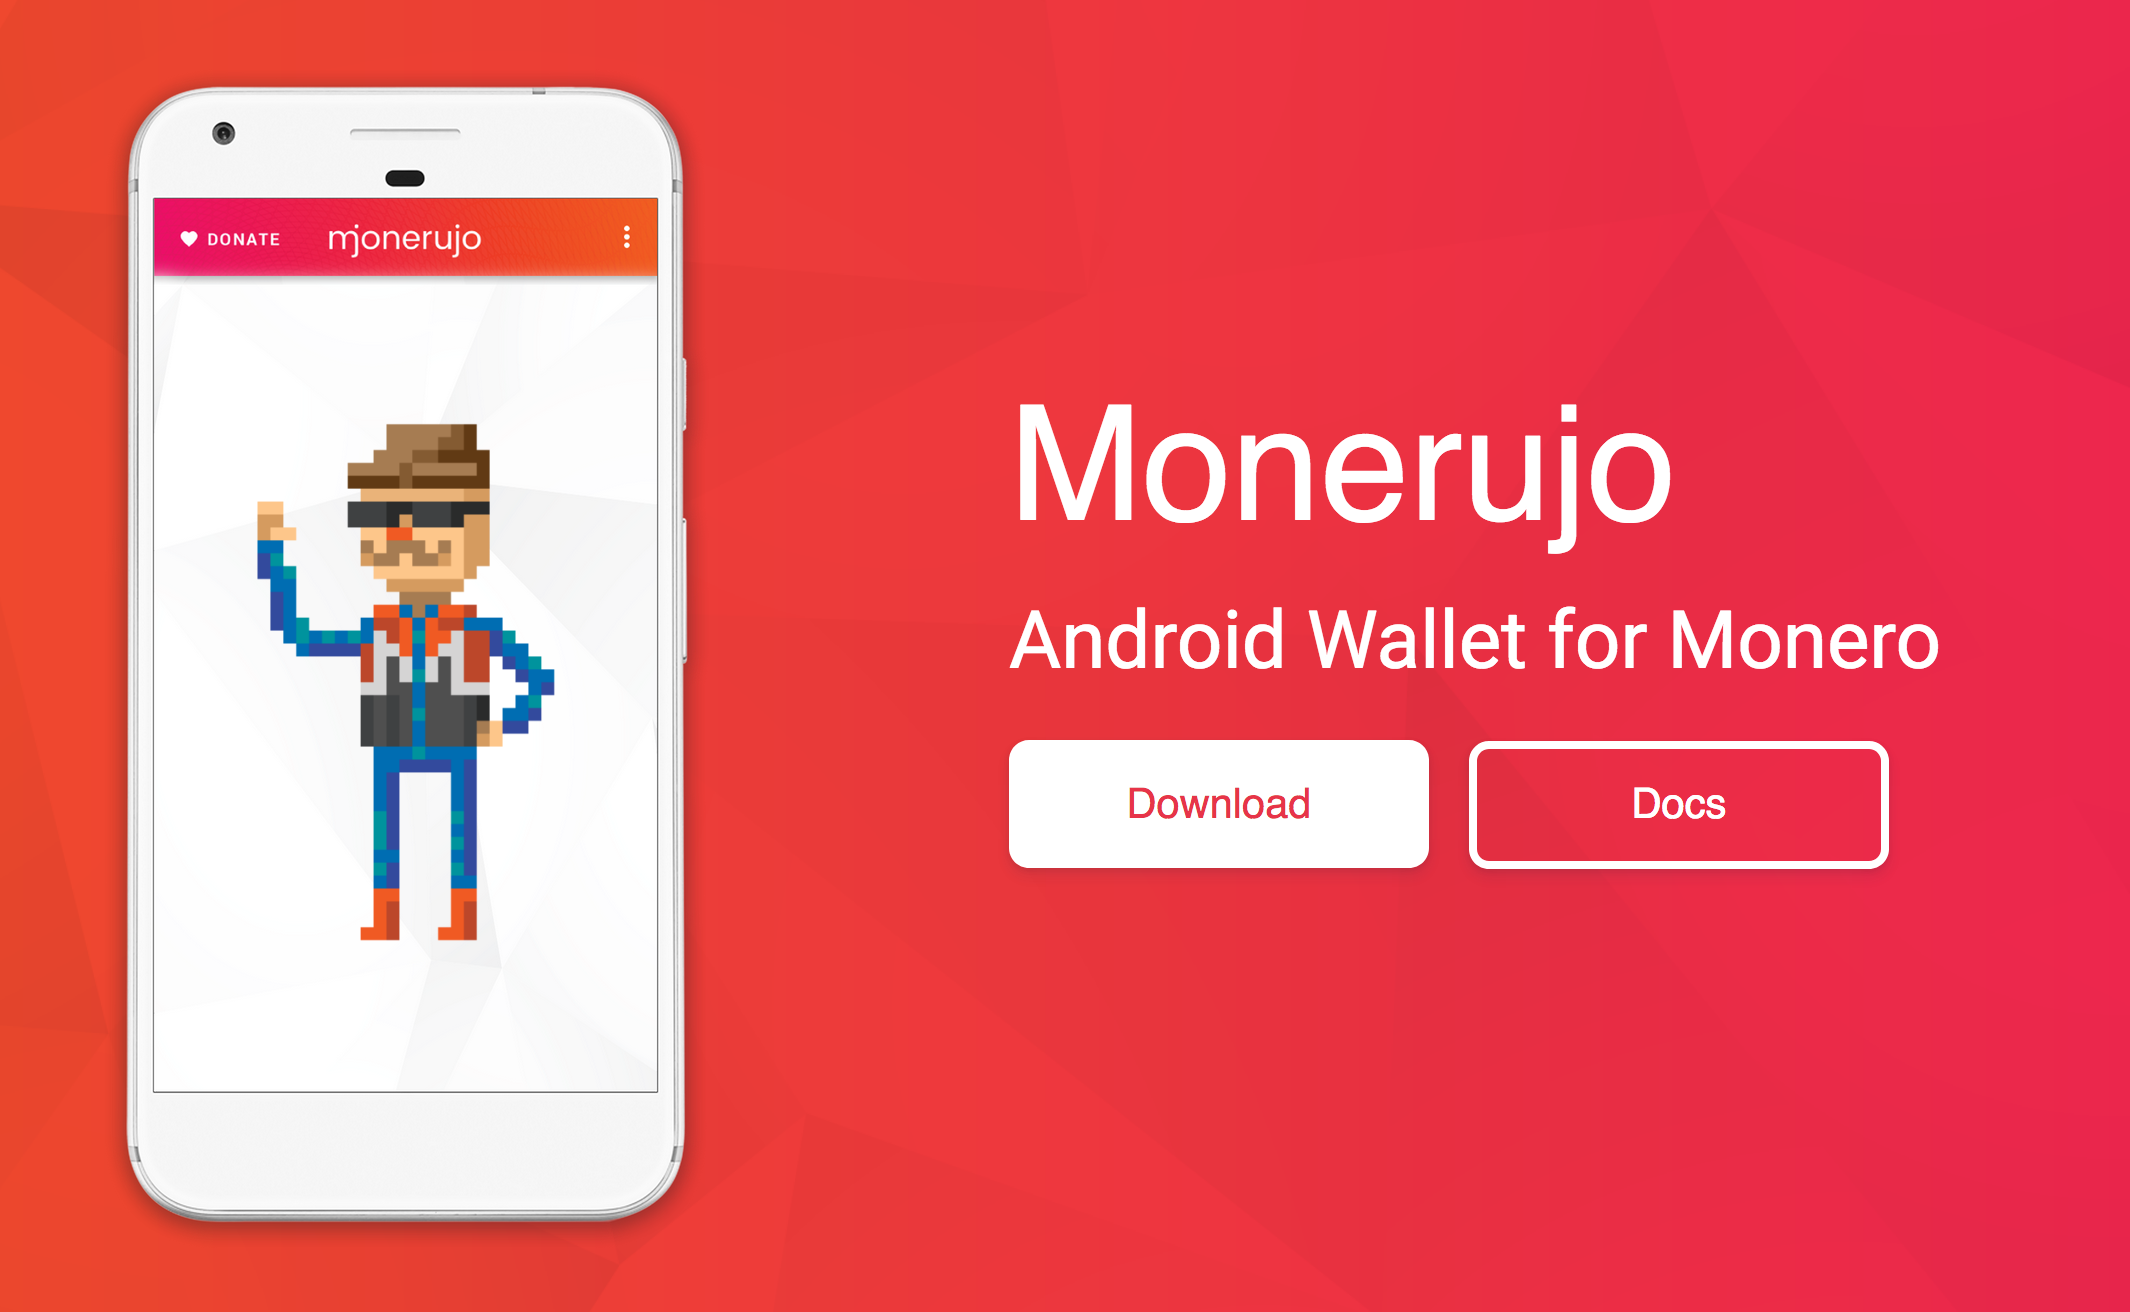 Monerujo - The first android wallet app for cryptocurrency Monero